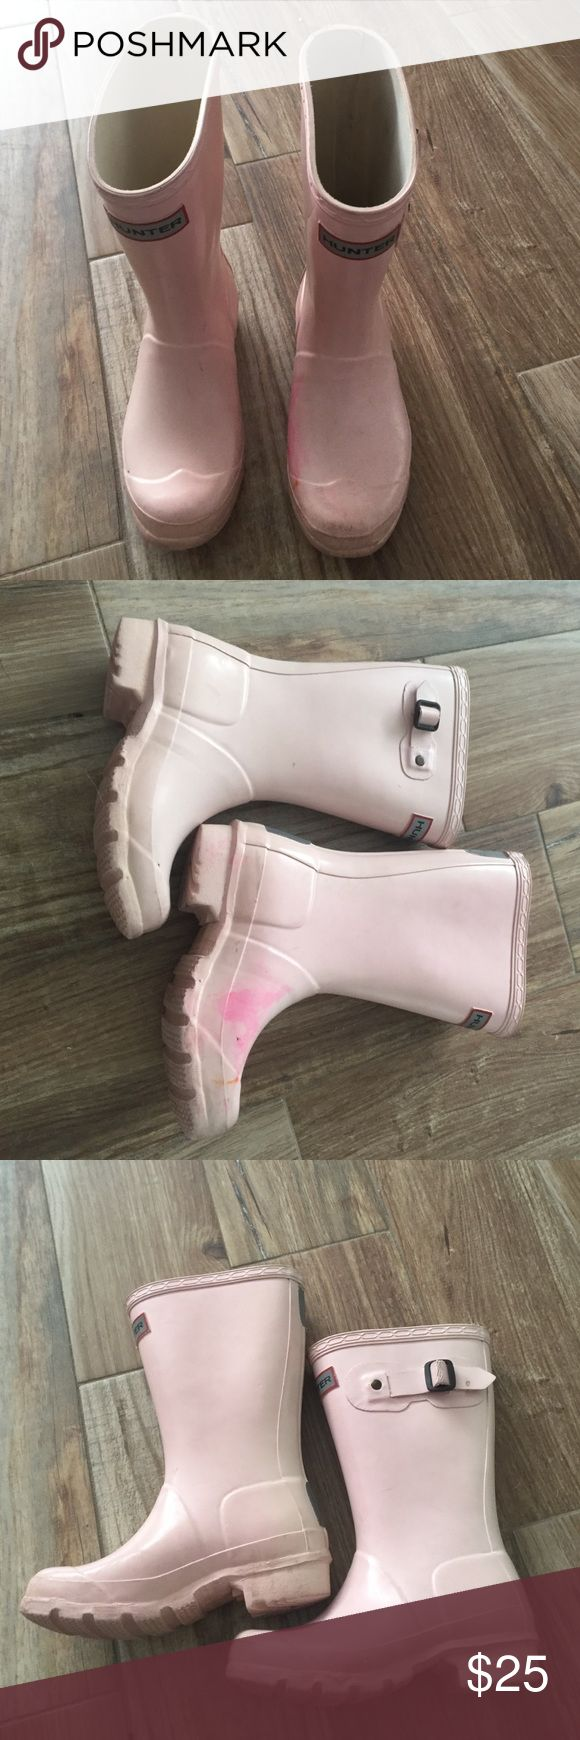 Girls hunter boots Great condition structurally, just some stains on the outside, never tried to clean it. Authentic Hunter Boots Shoes Rain & Snow Boots